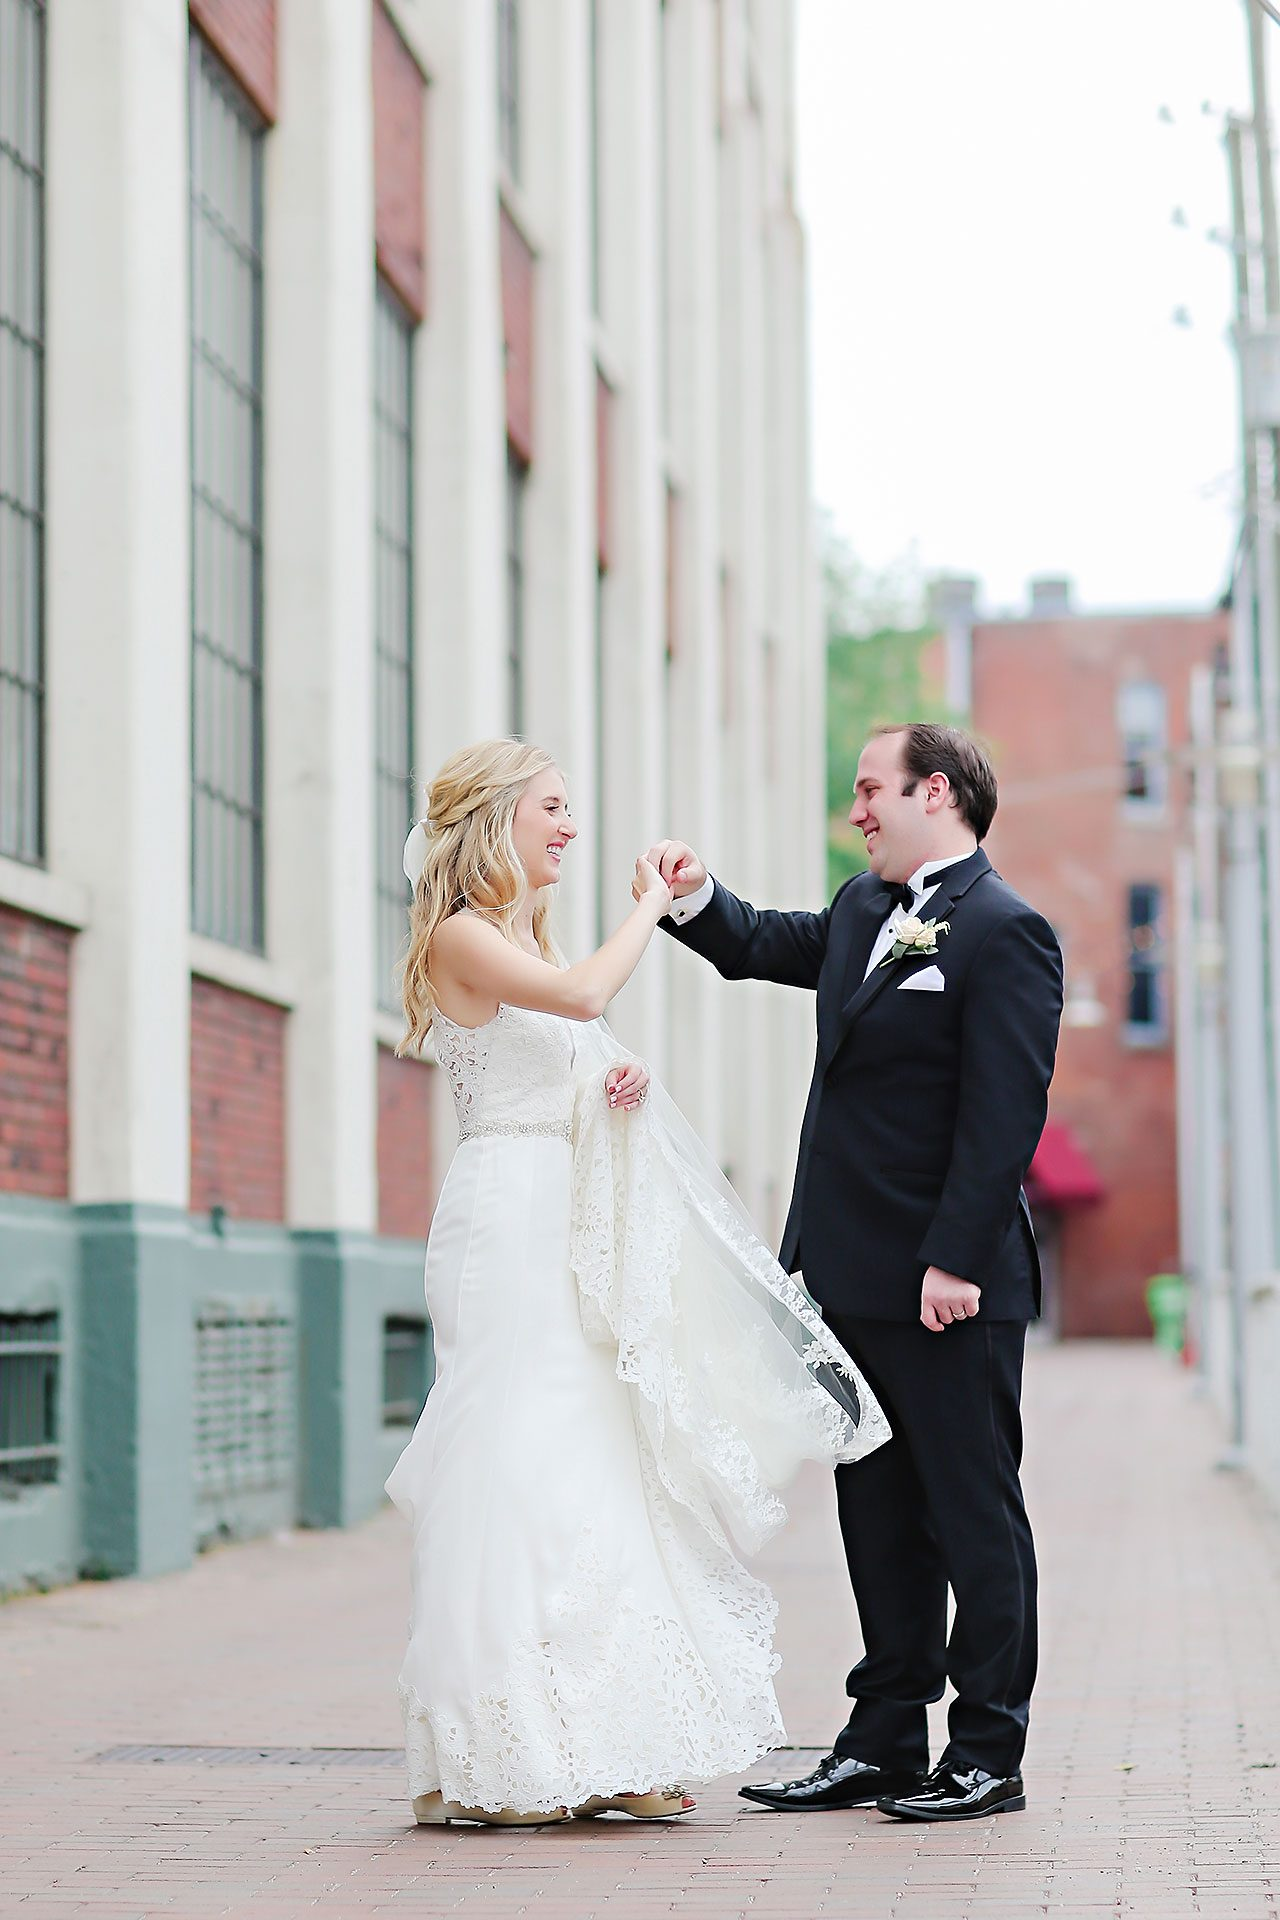 Allison Jeff Union Station Crowne Plaza Indianapolis wedding 119